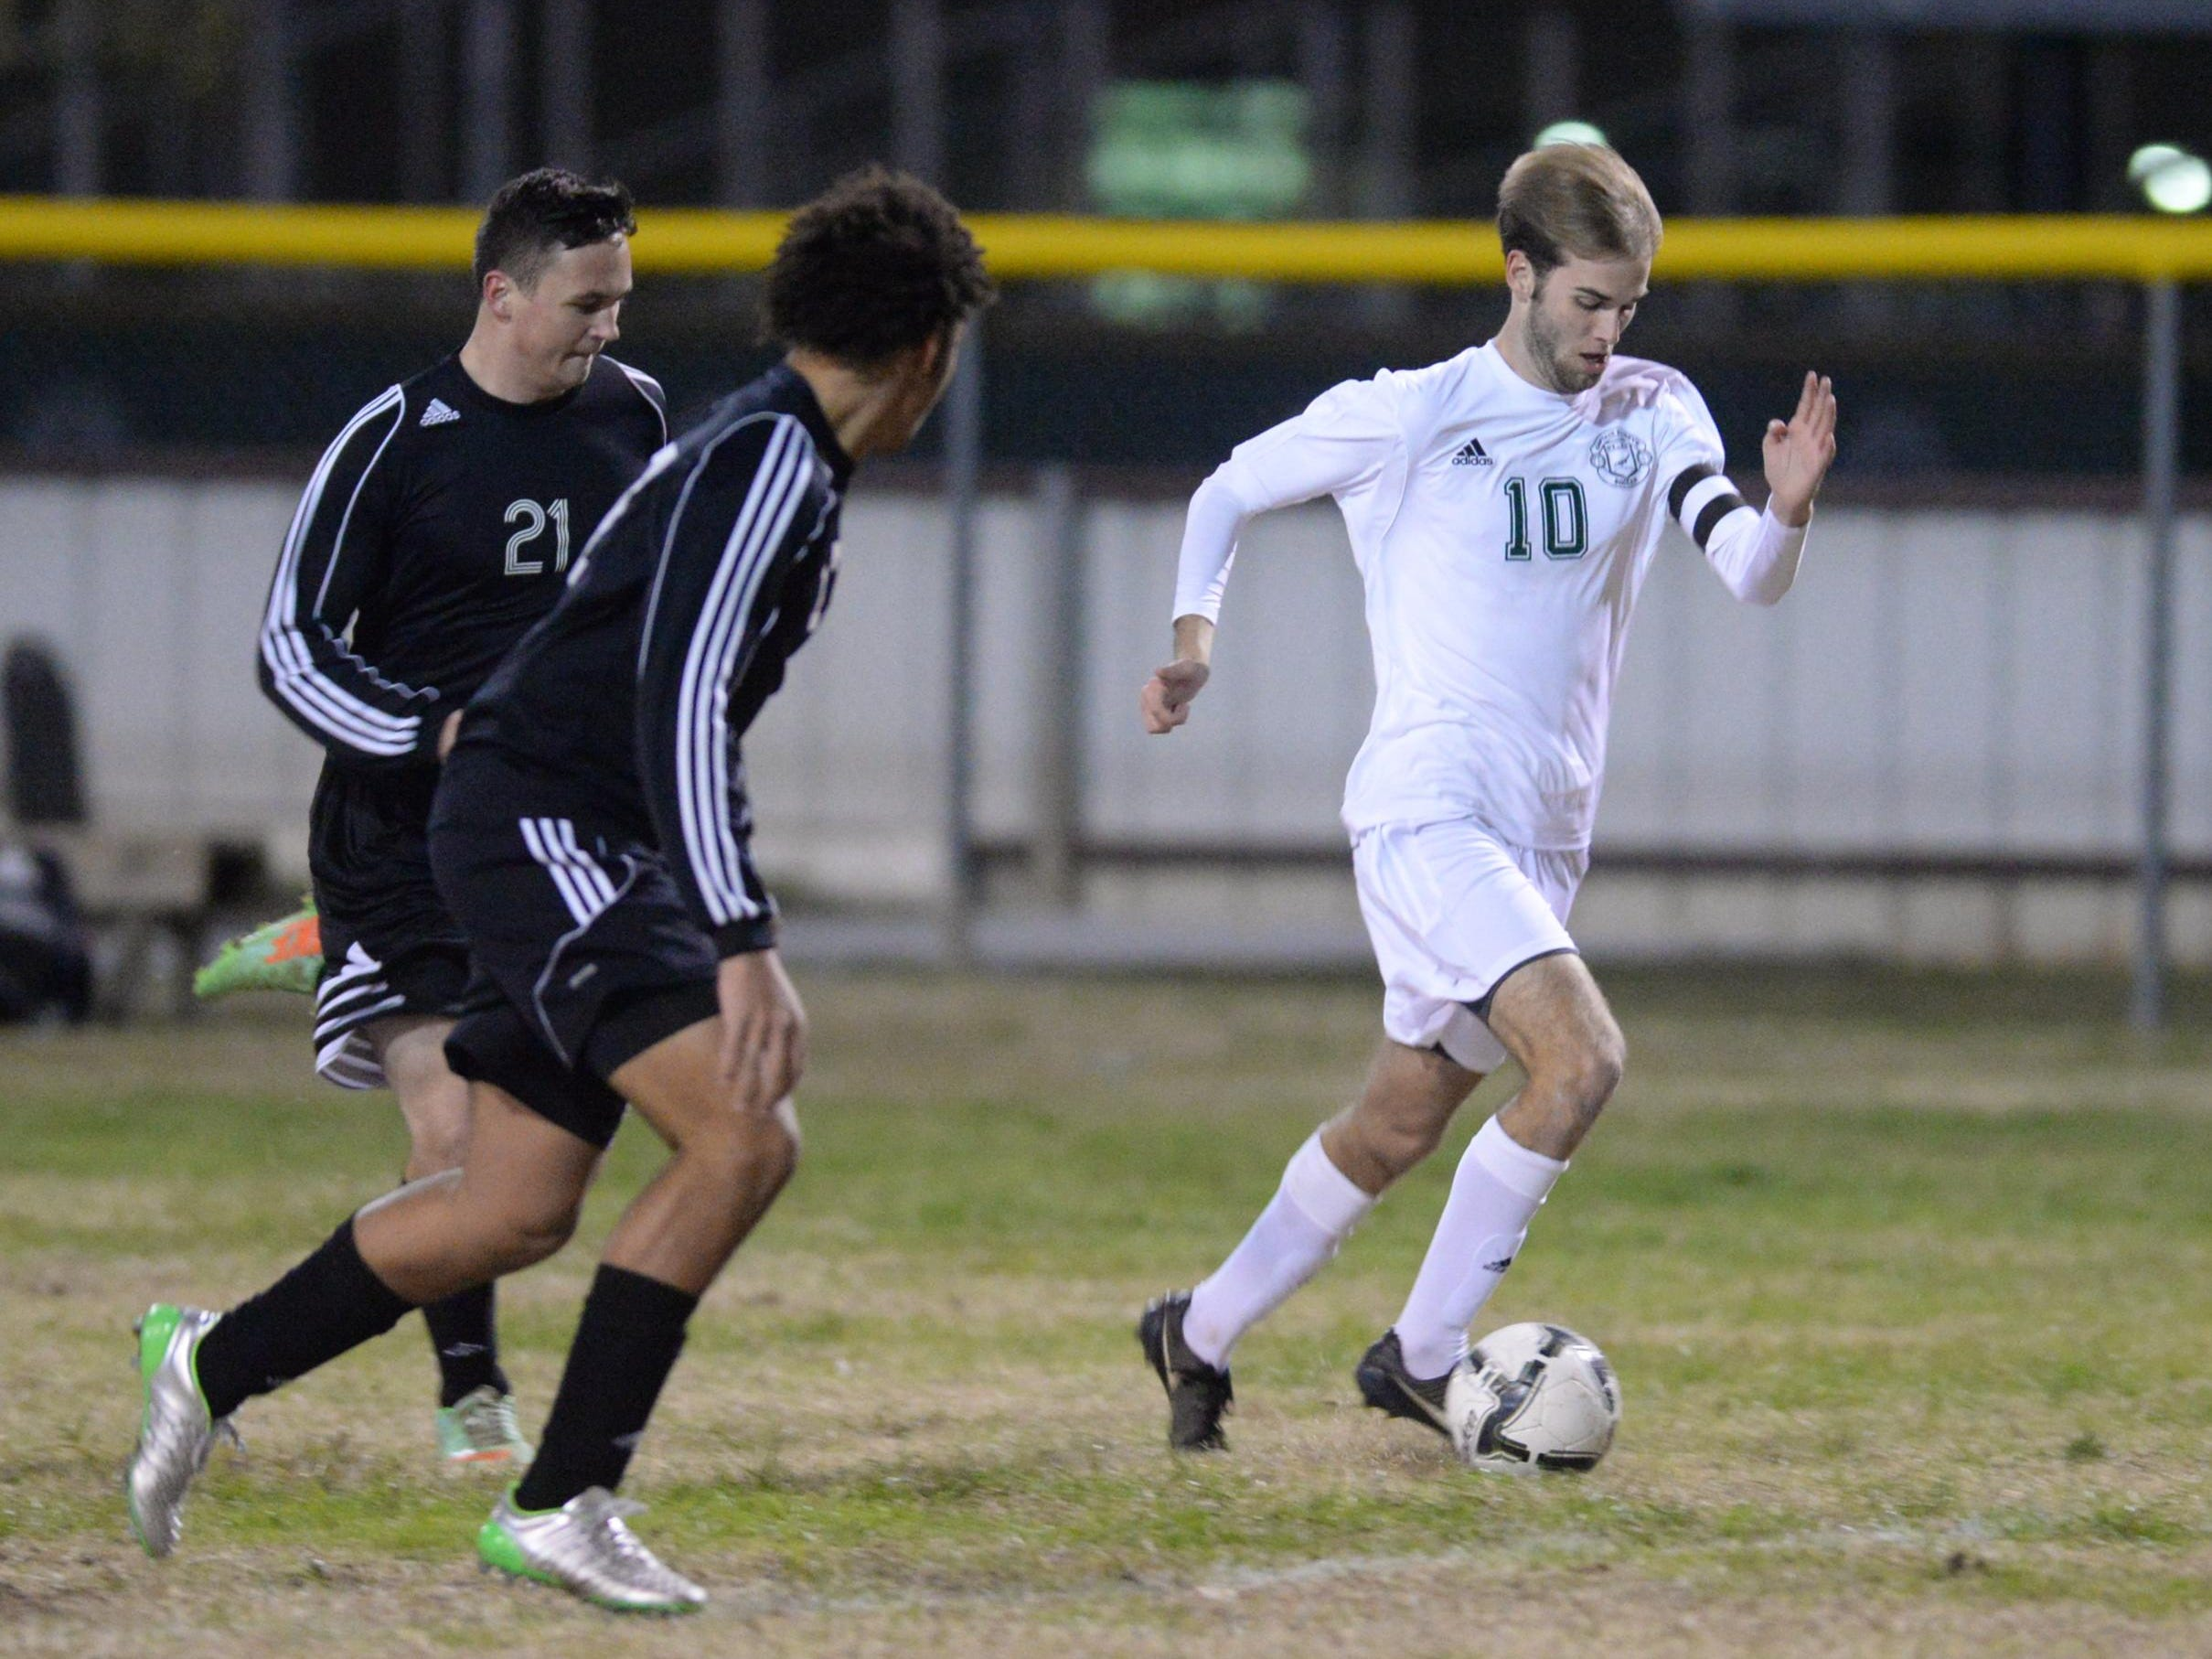 Hardy Hall of Capt Shreve breaks away with the ball while taking on Parkway.